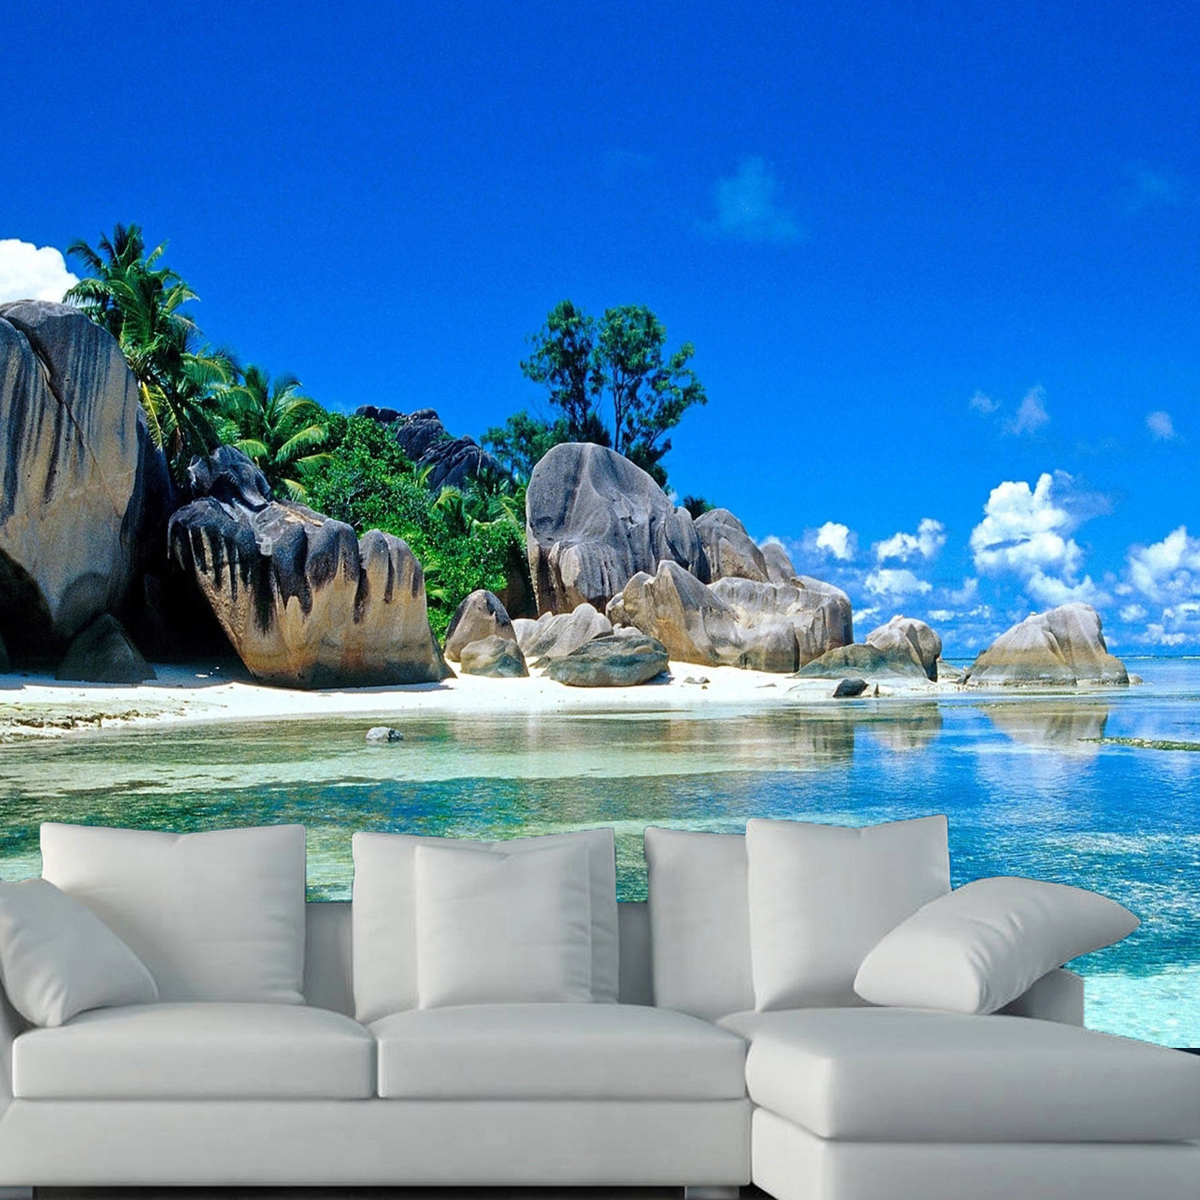 3d wallpaper bedroom living mural beach sea island for Beach mural wallpaper